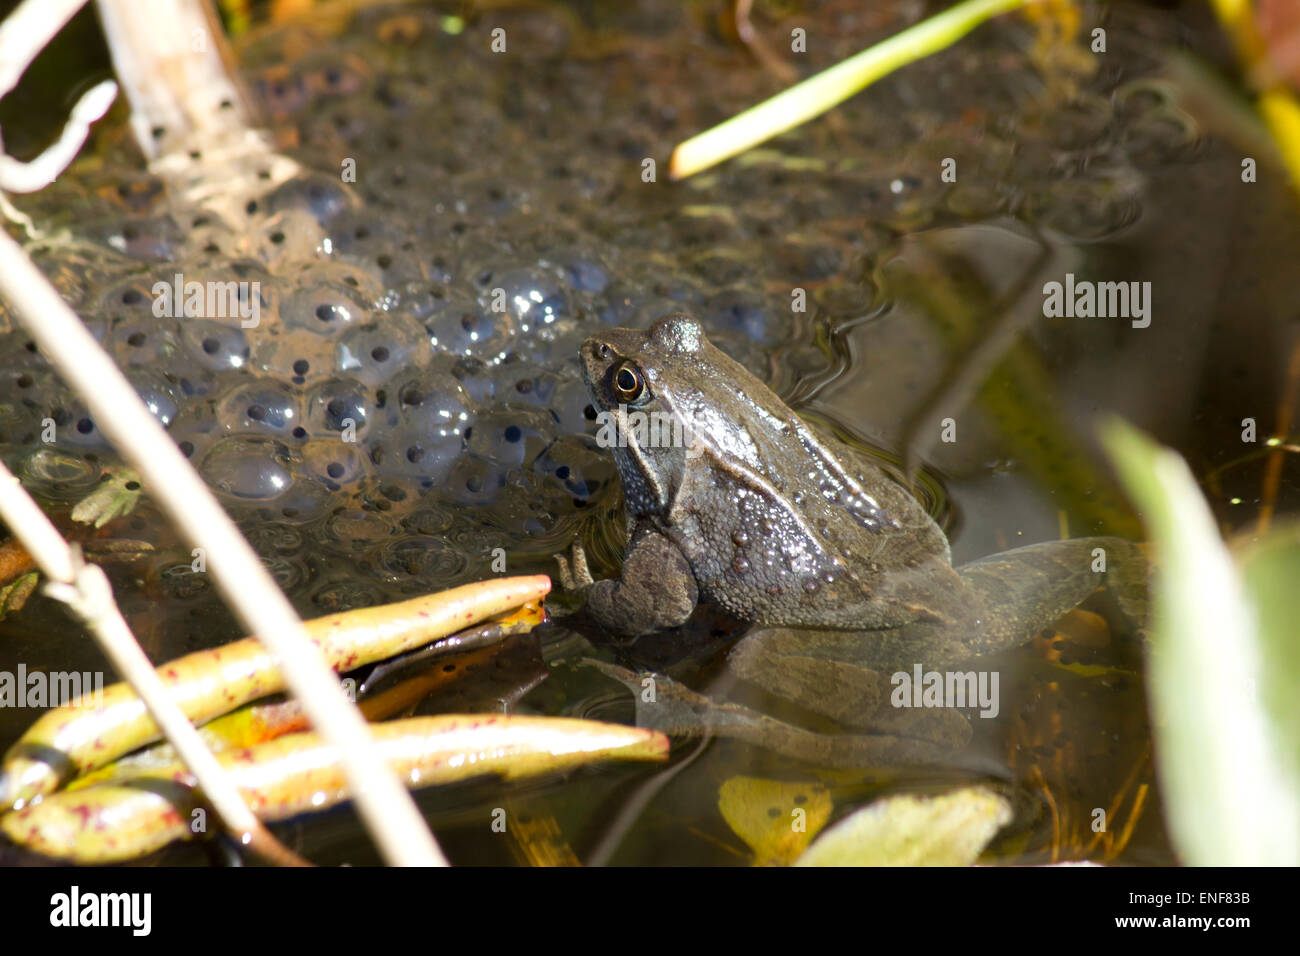 Frog in pond with frogspawn - Stock Image